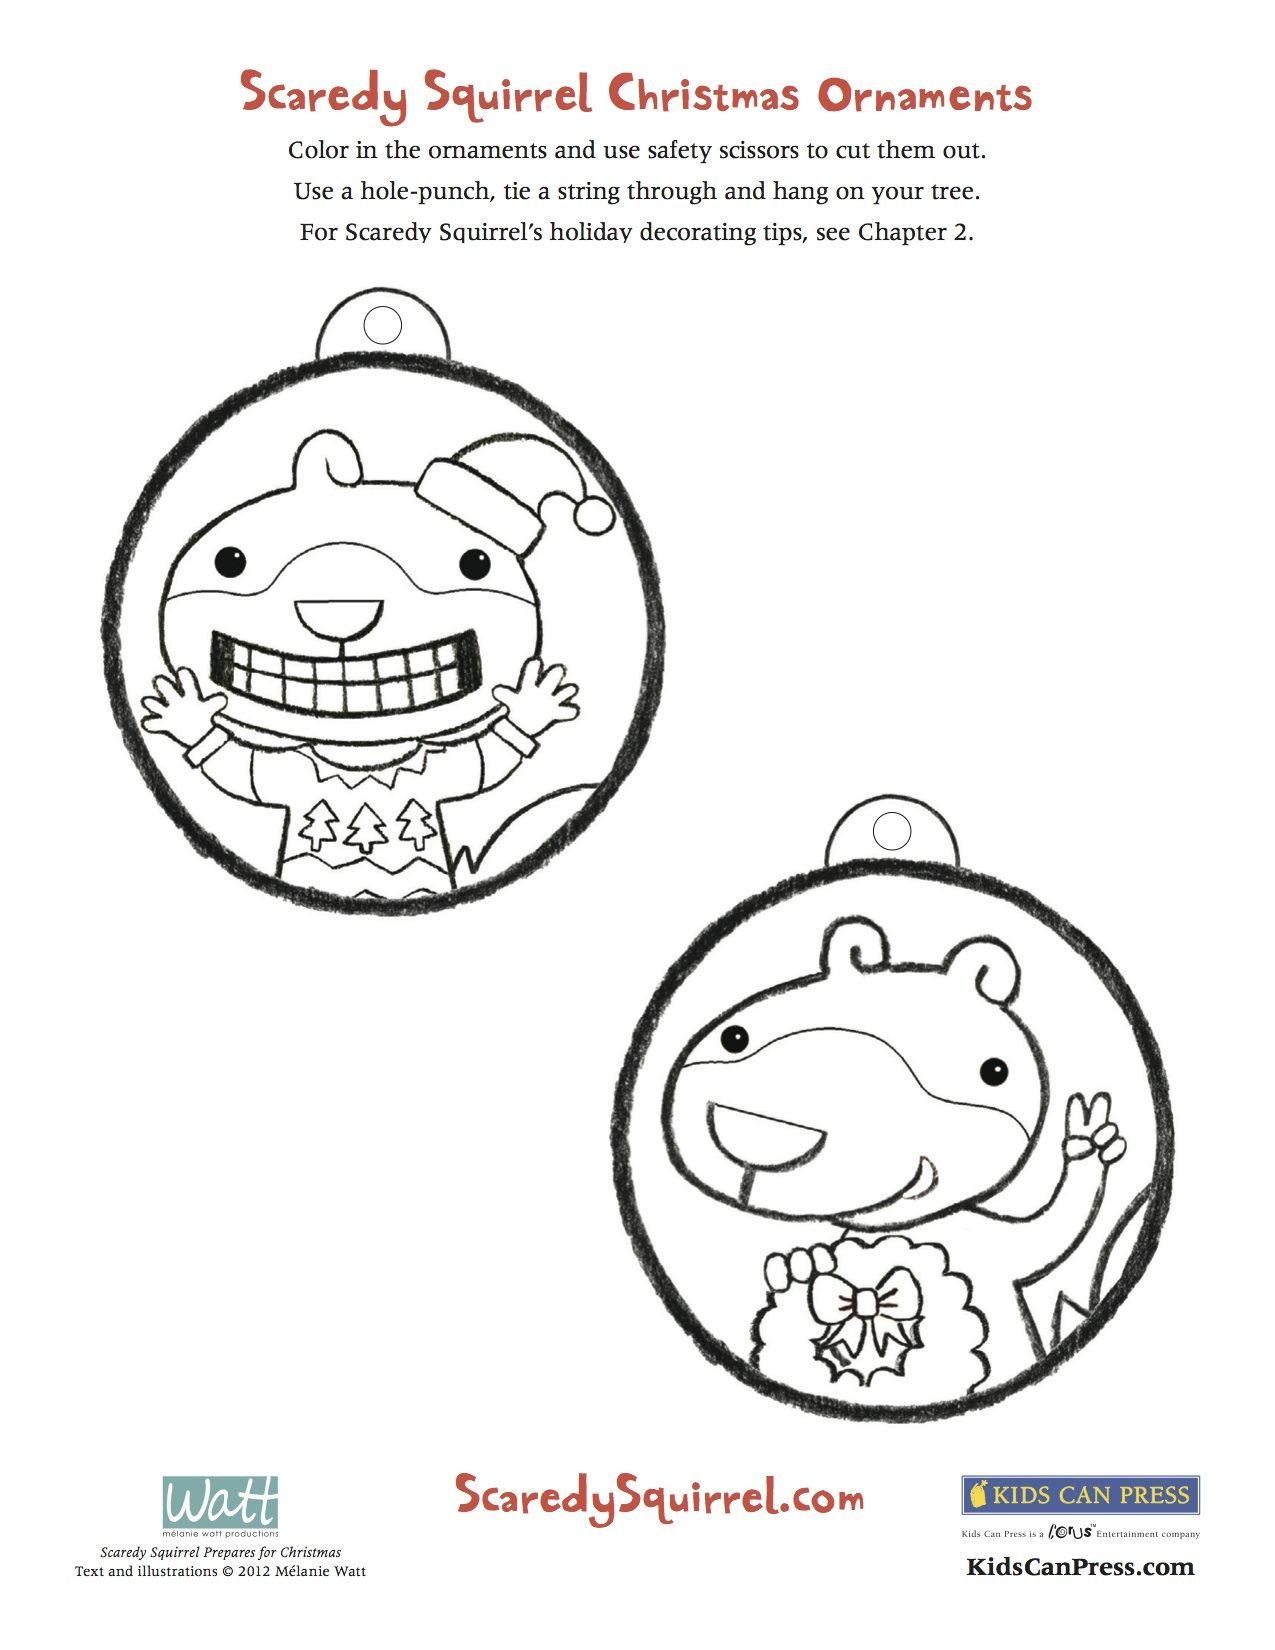 Make Your Very Own Scaredy Squirrel Christmas Ornaments